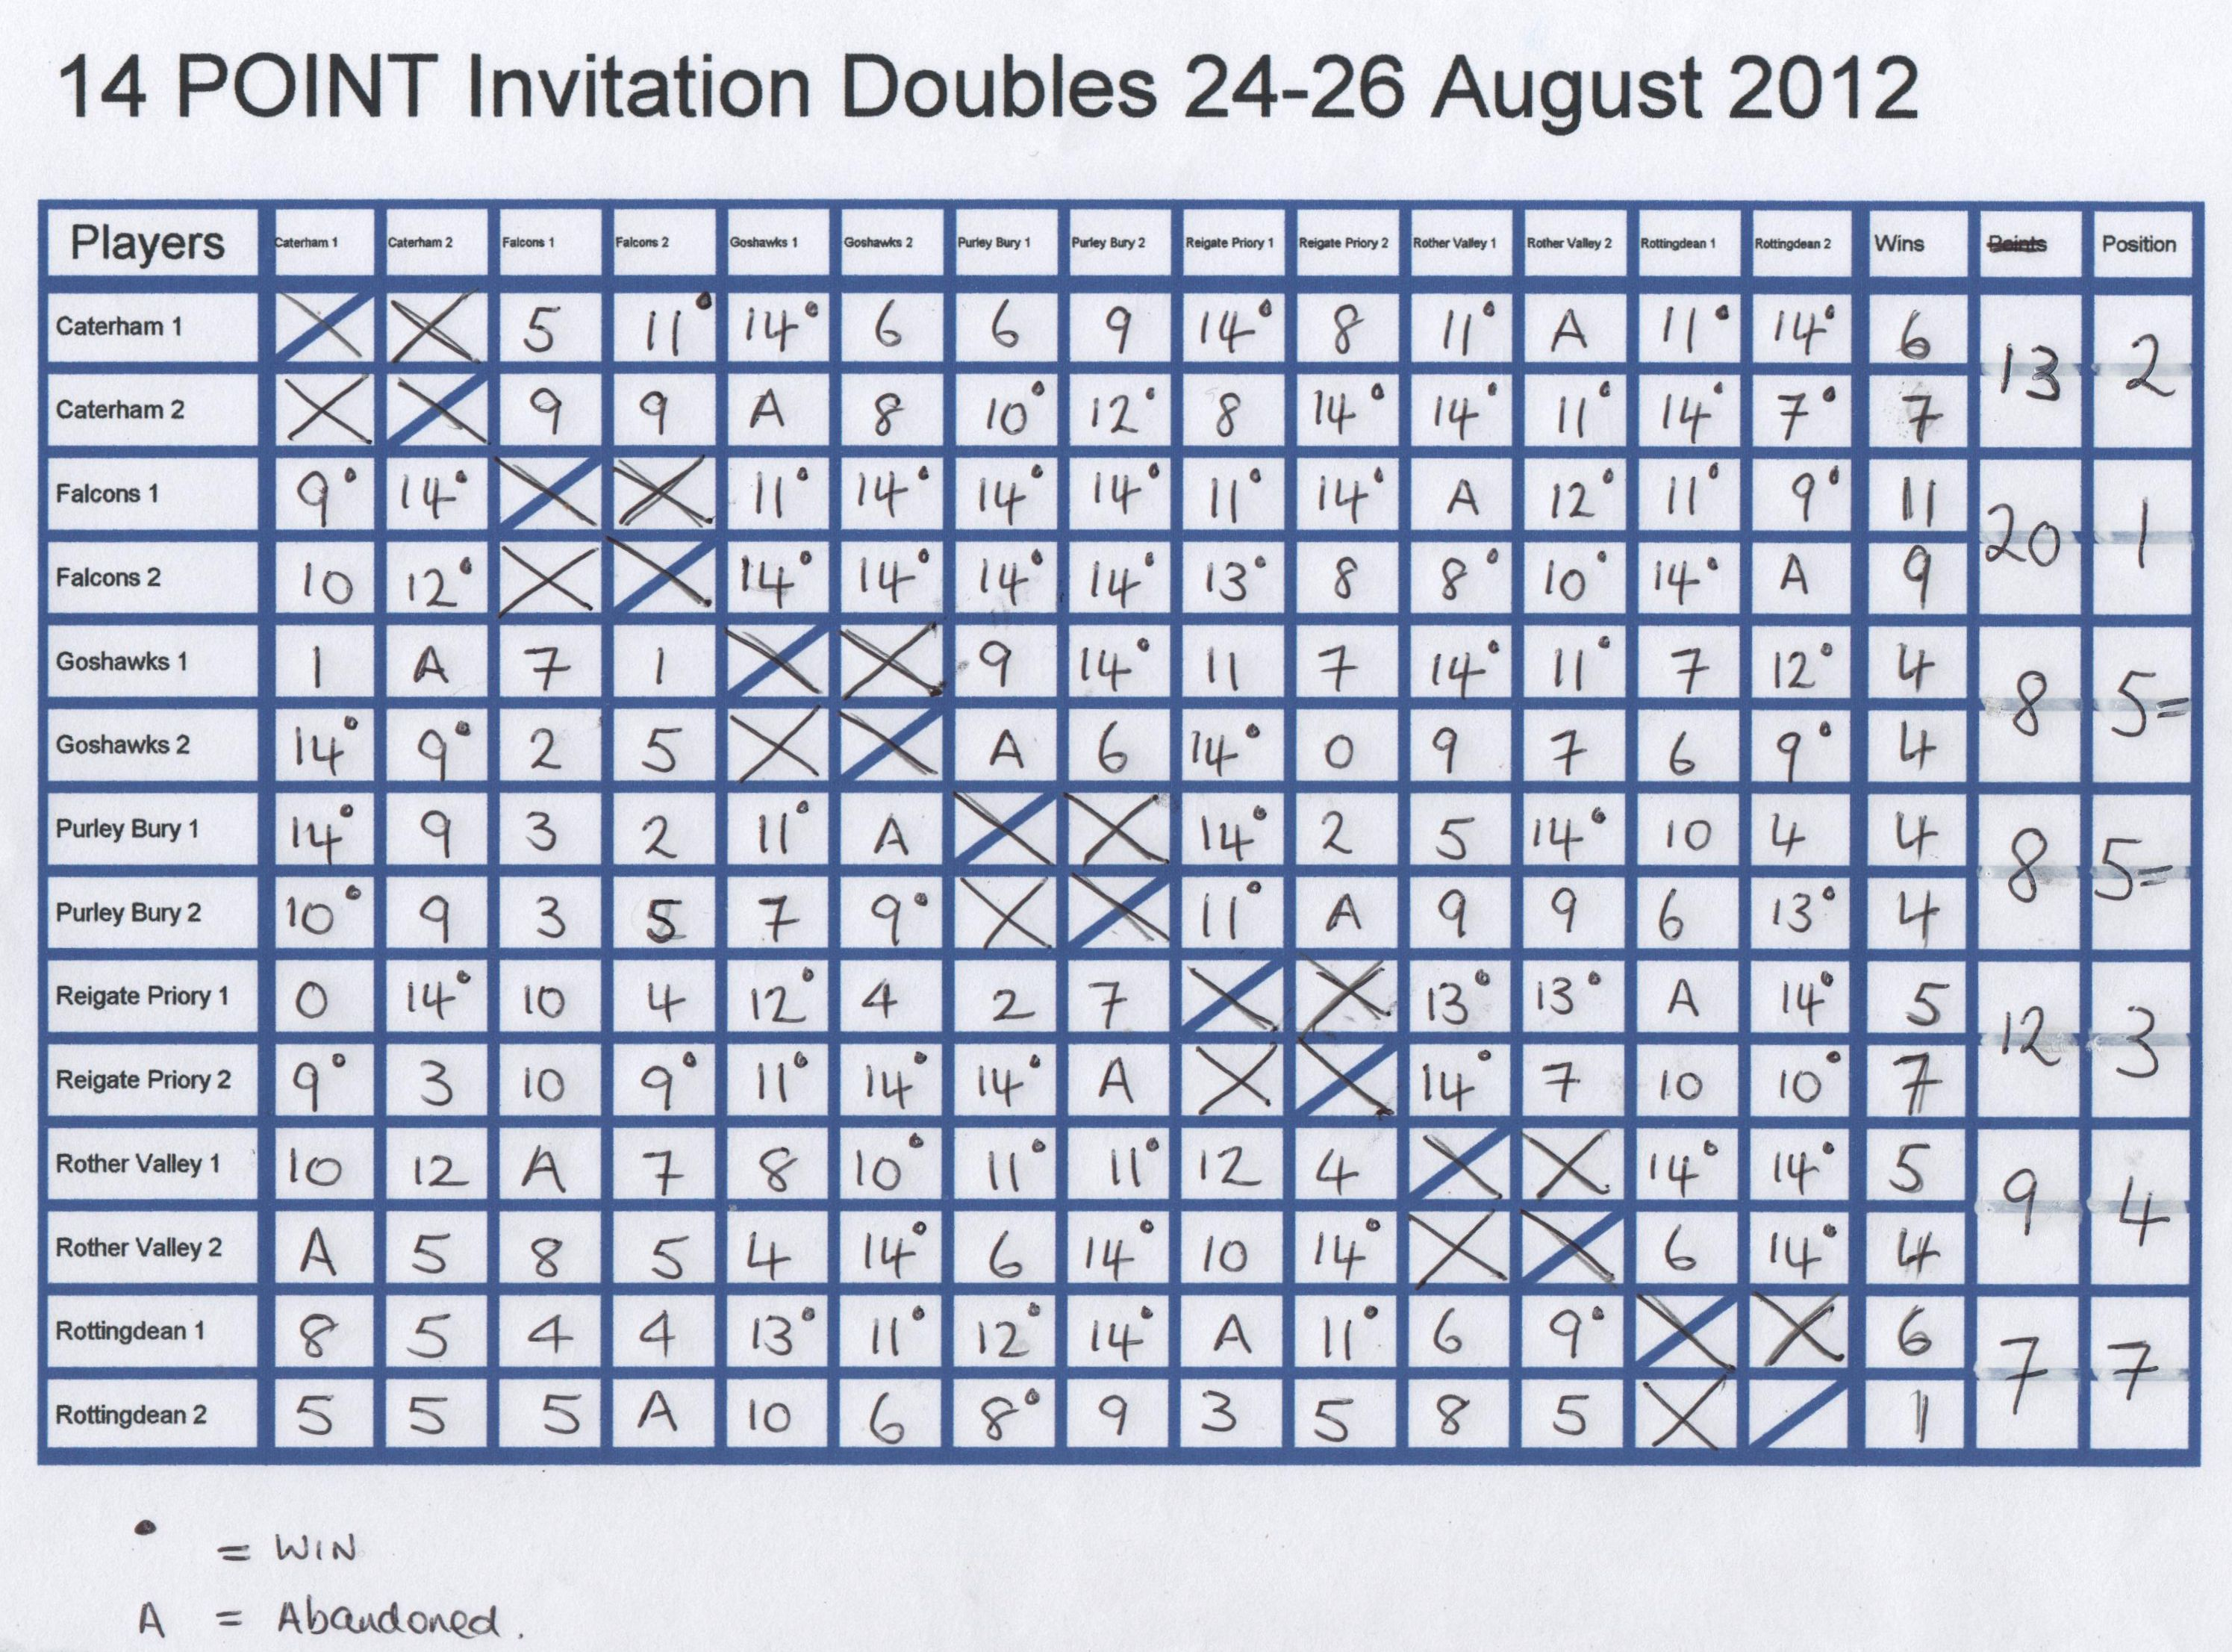 Inv-doubles-2012.jpg